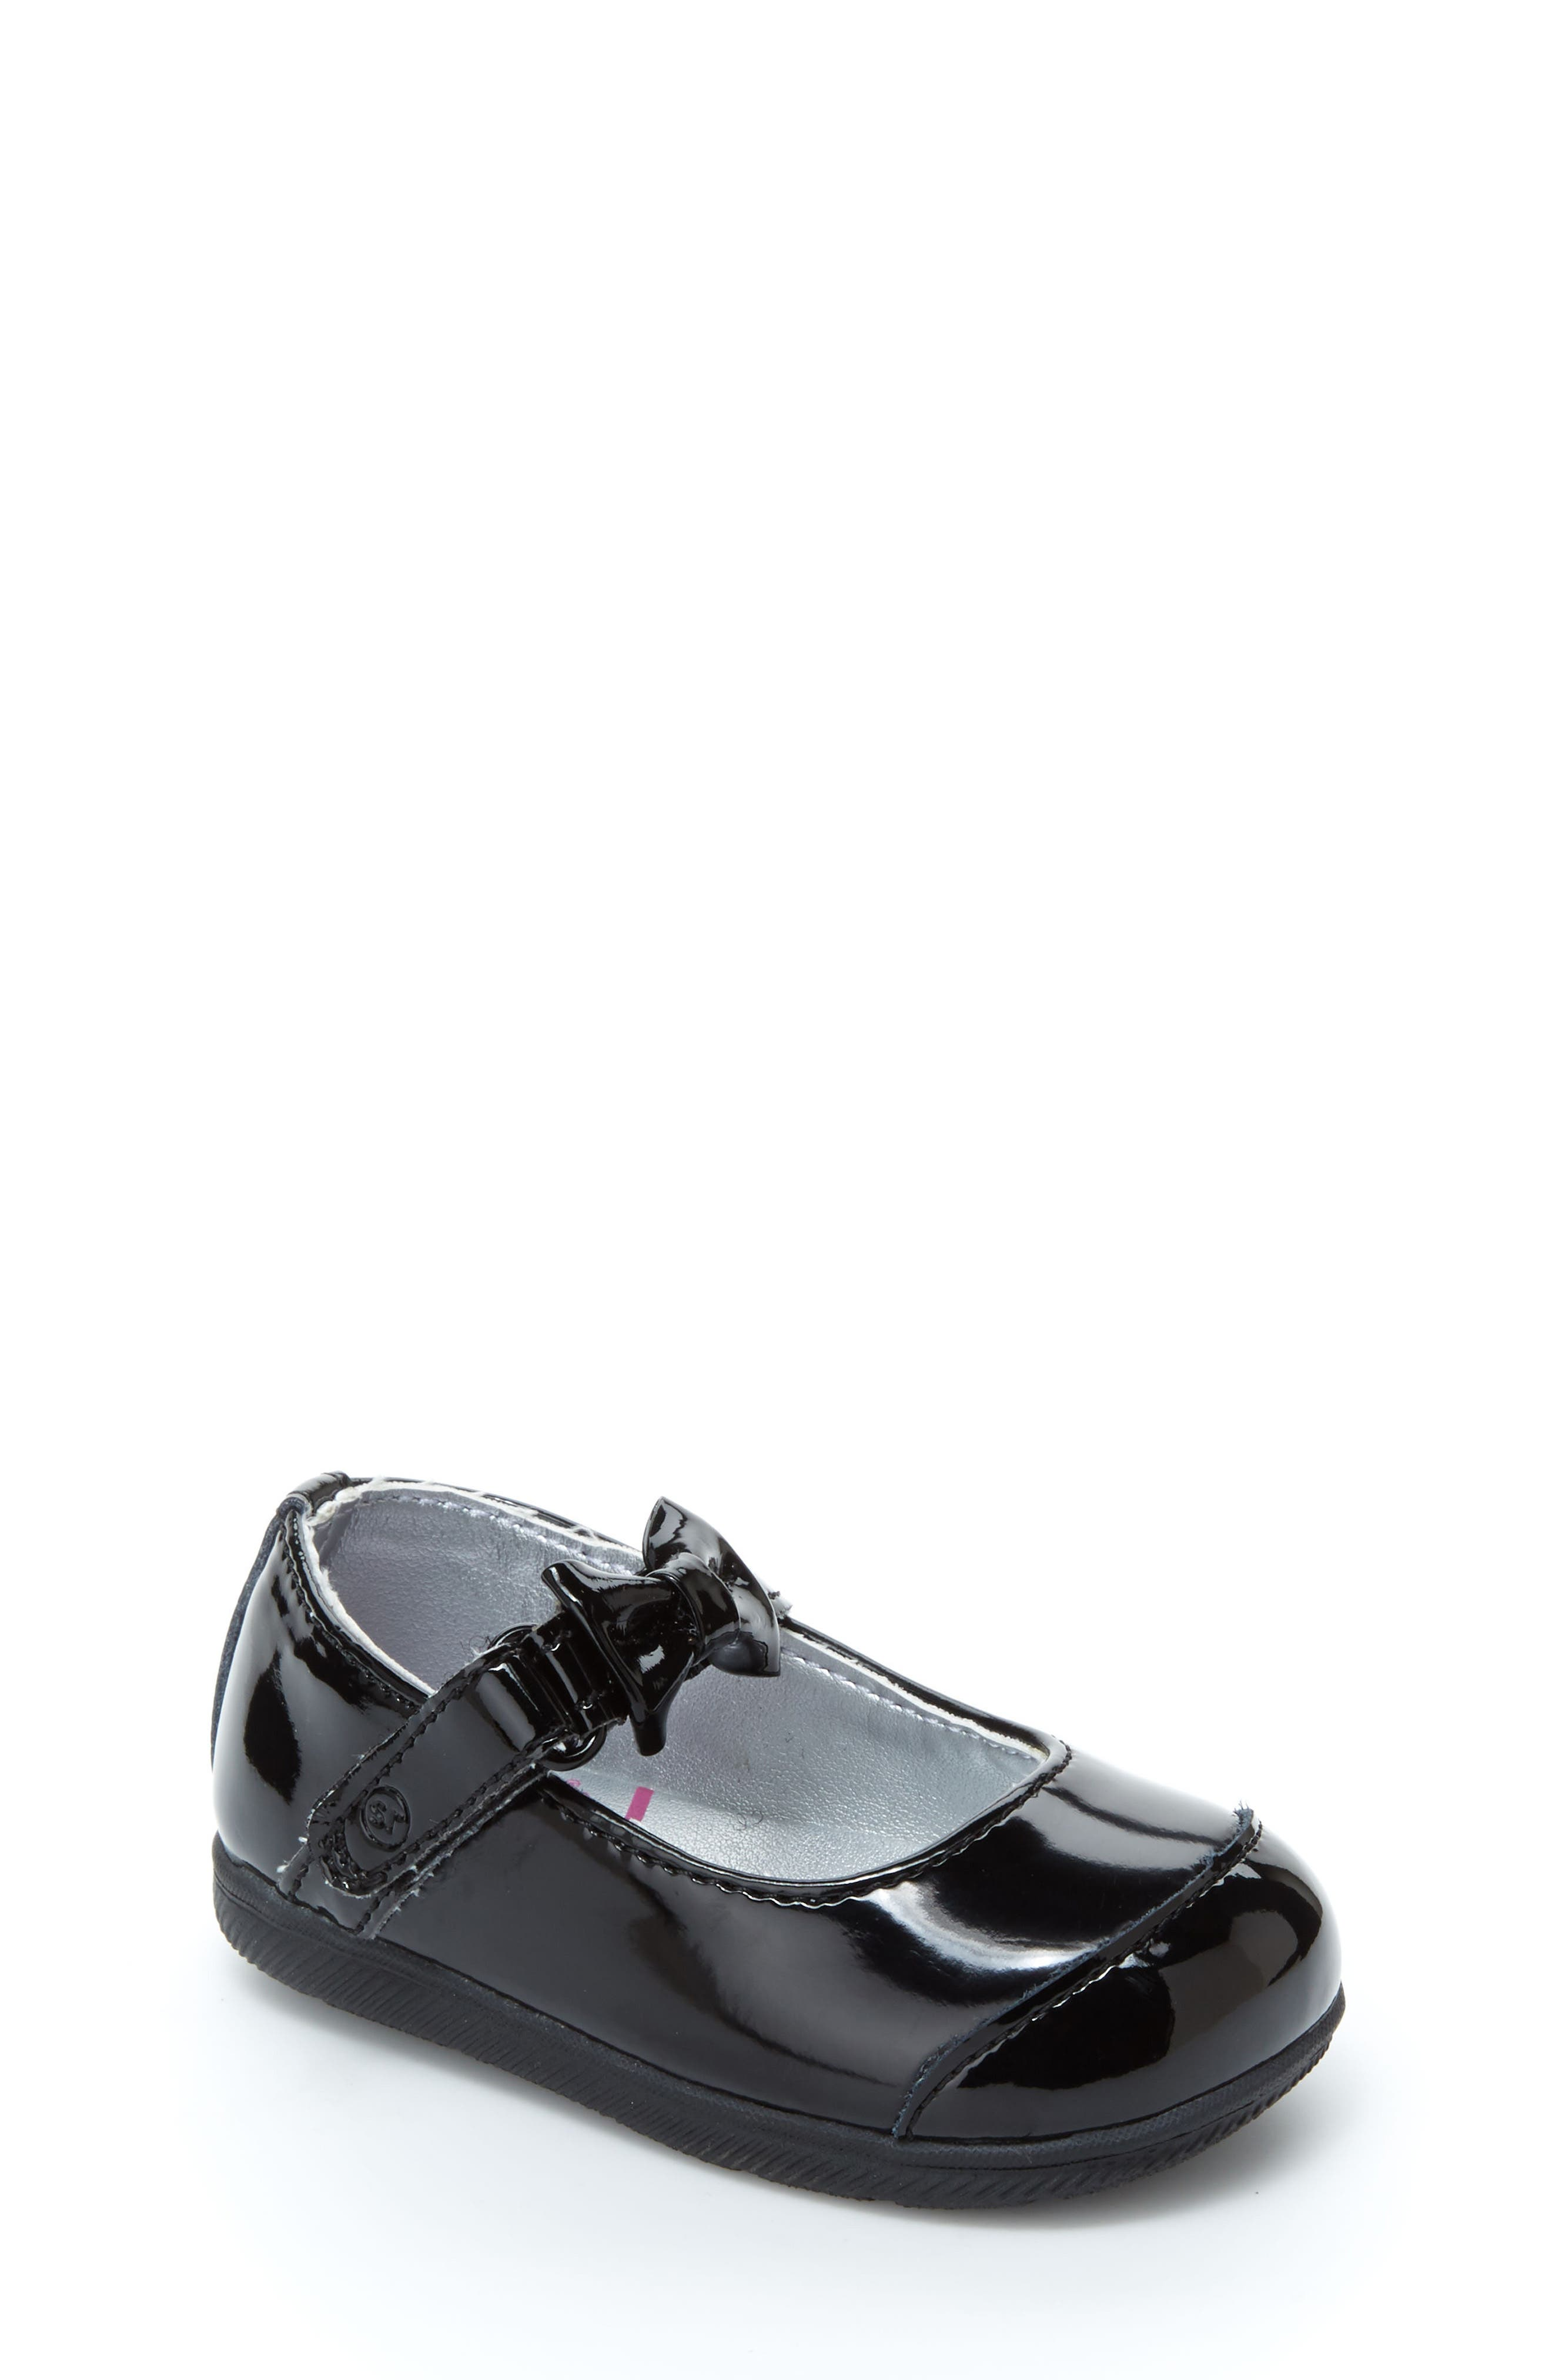 A perfect little bow adorns the mary-jane strap of this patent leather crib shoe outfitted with a charming cap toe. Style Name: Stride Rite Mirren Mary Jane (Baby). Style Number: 5215599. Available in stores.